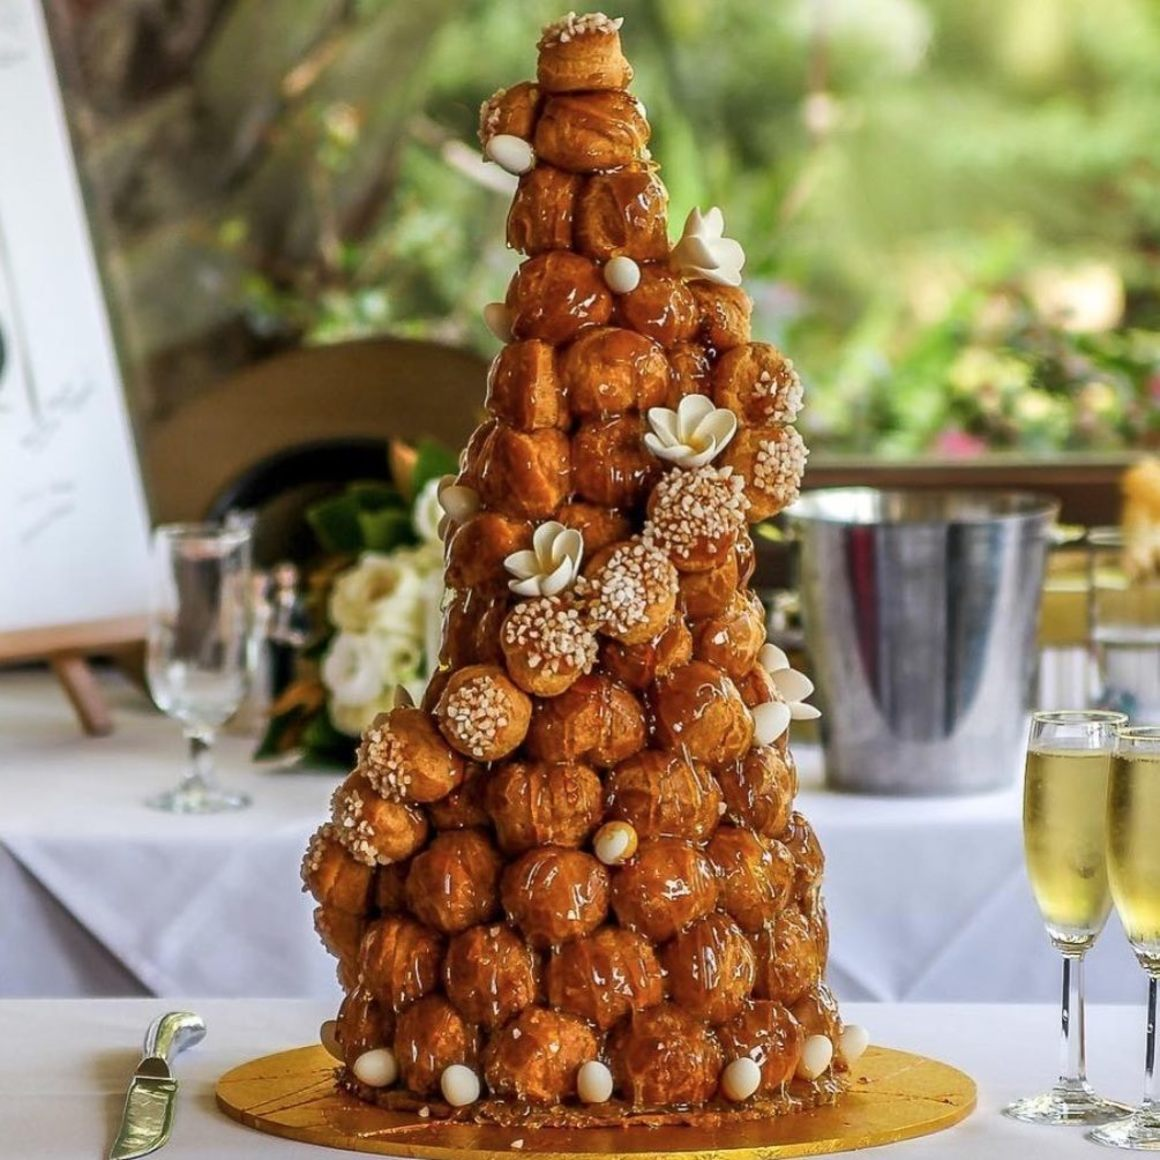 This mile-high pastry display is the perfect level of extravagance for your French-inspired wedding desserts. Photo from:  Croquembouche Patisserie